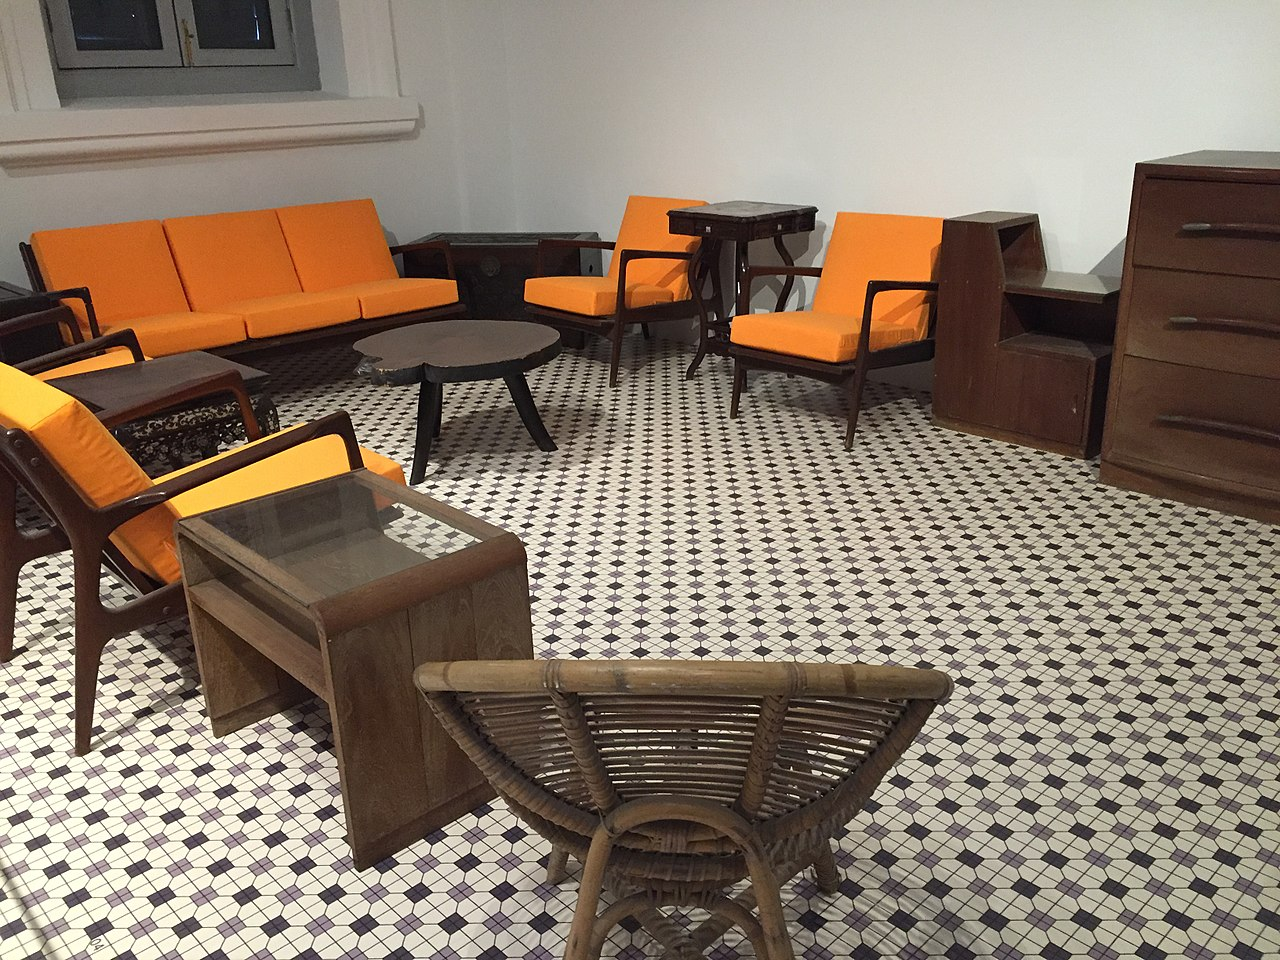 File:Furniture From 38 Oxley Road, National Museum Of Singapore    20151213